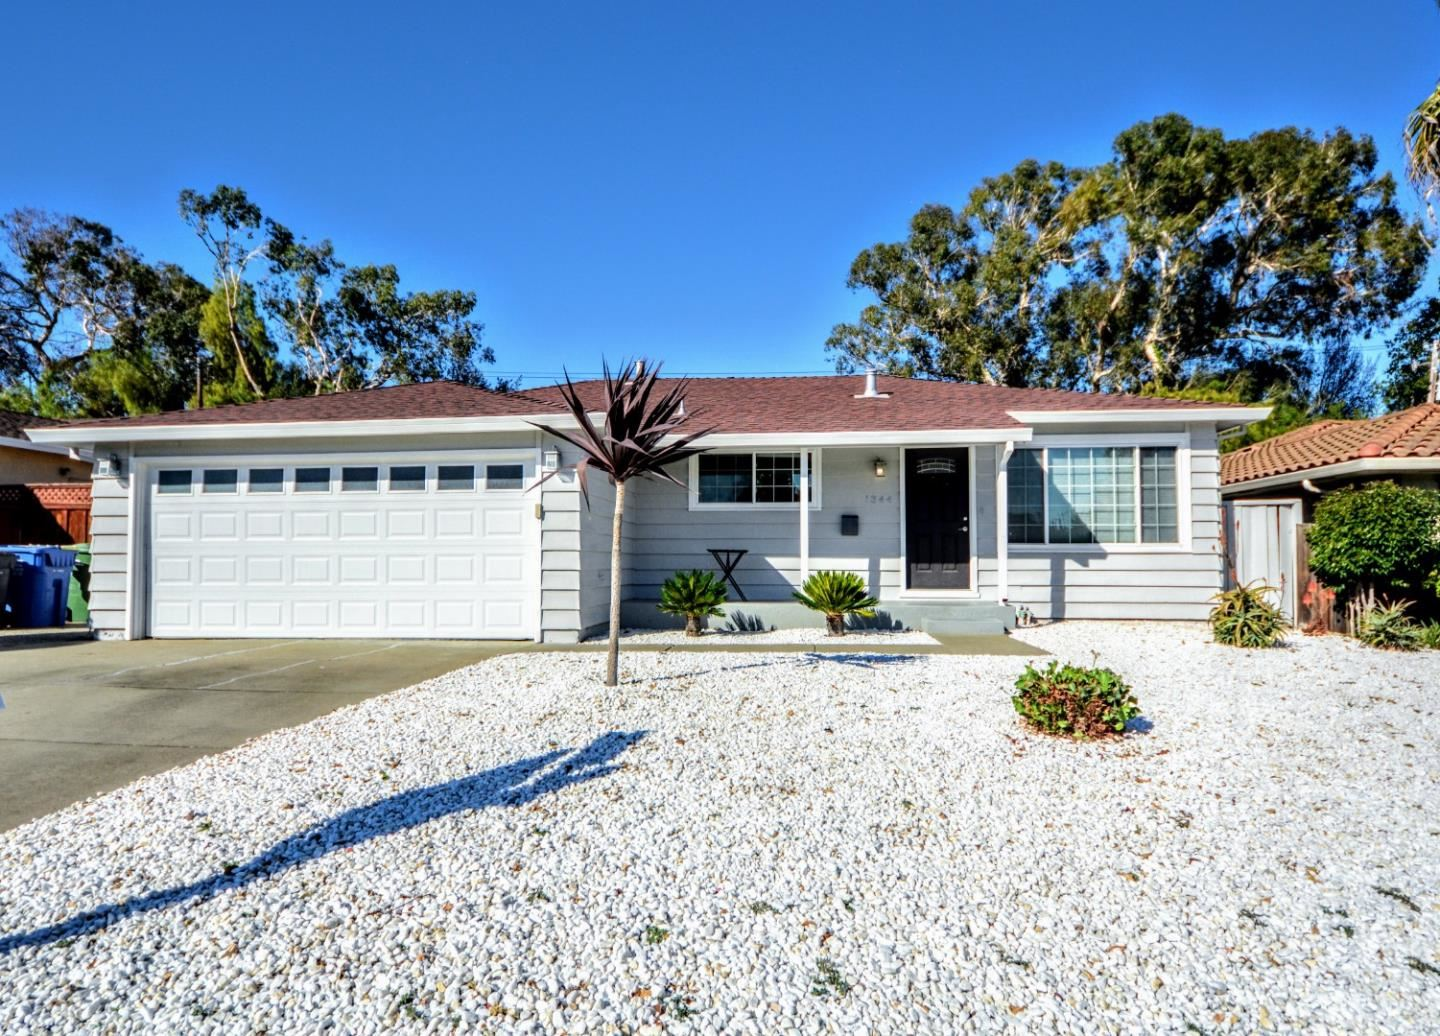 Photo for 1344 North Hillview Drive, MILPITAS, CA 95035 (MLS # ML81852639)